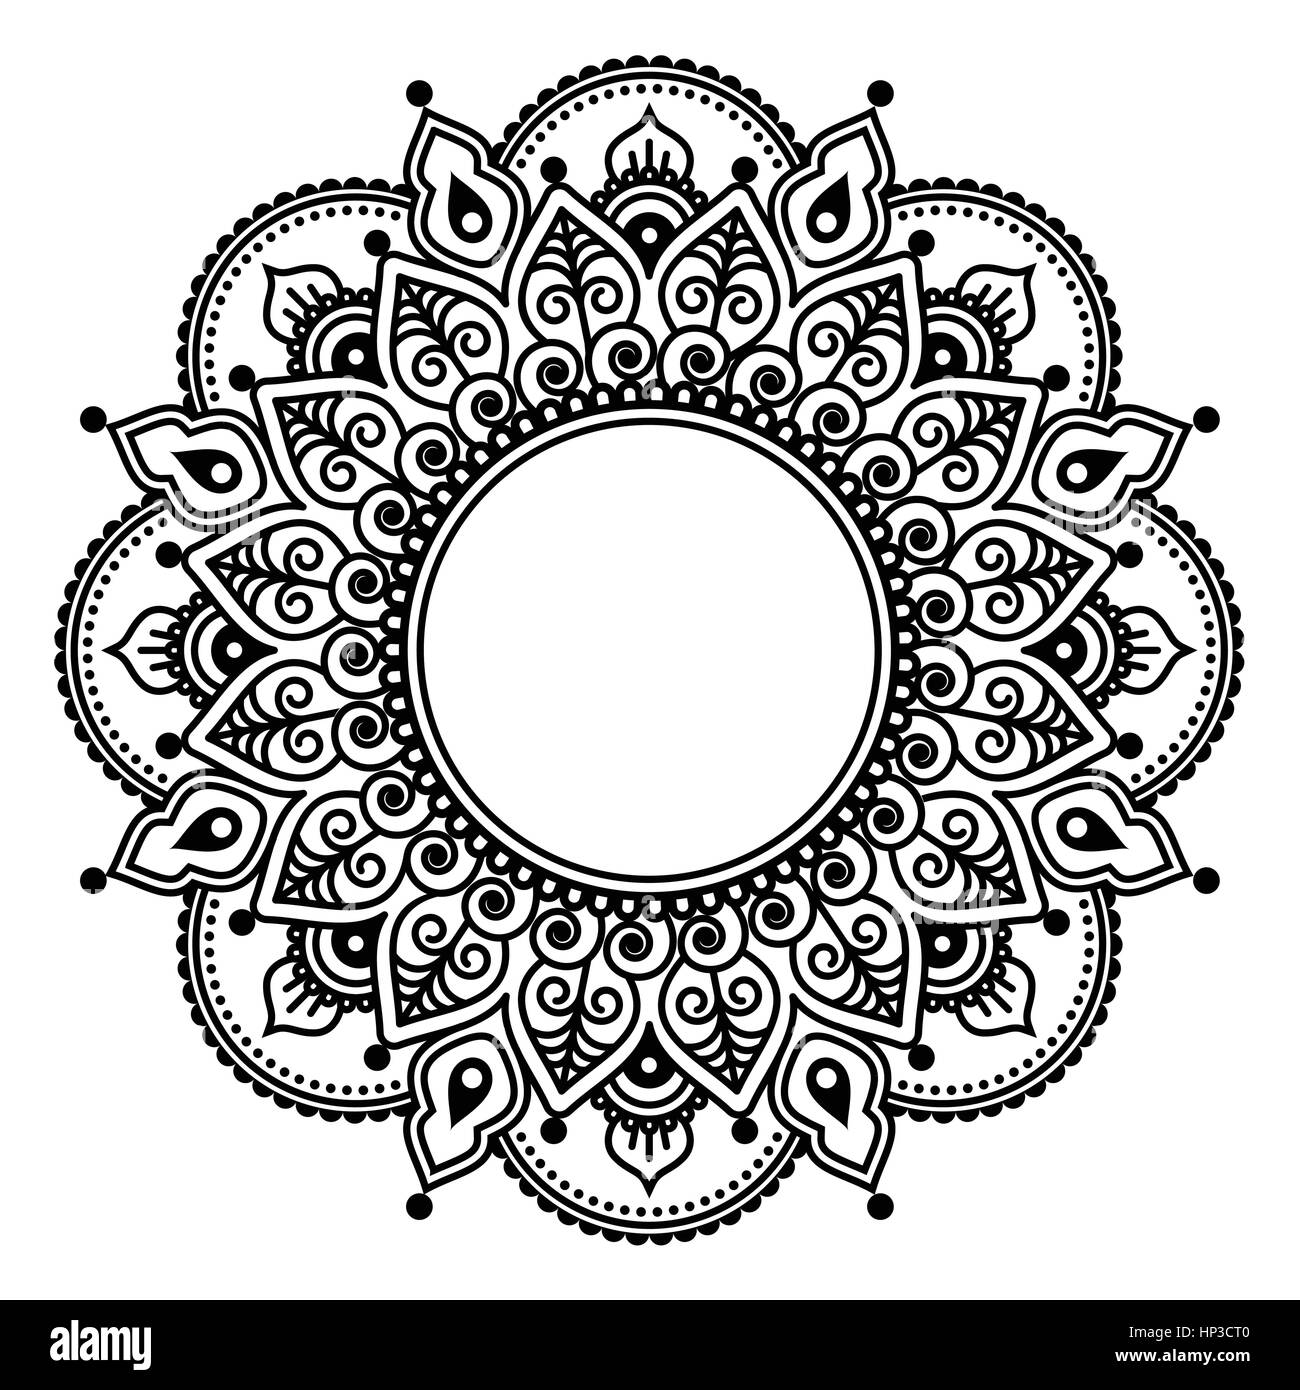 Mehndi Lace Indian Henna Tattoo Round Design Or Pattern